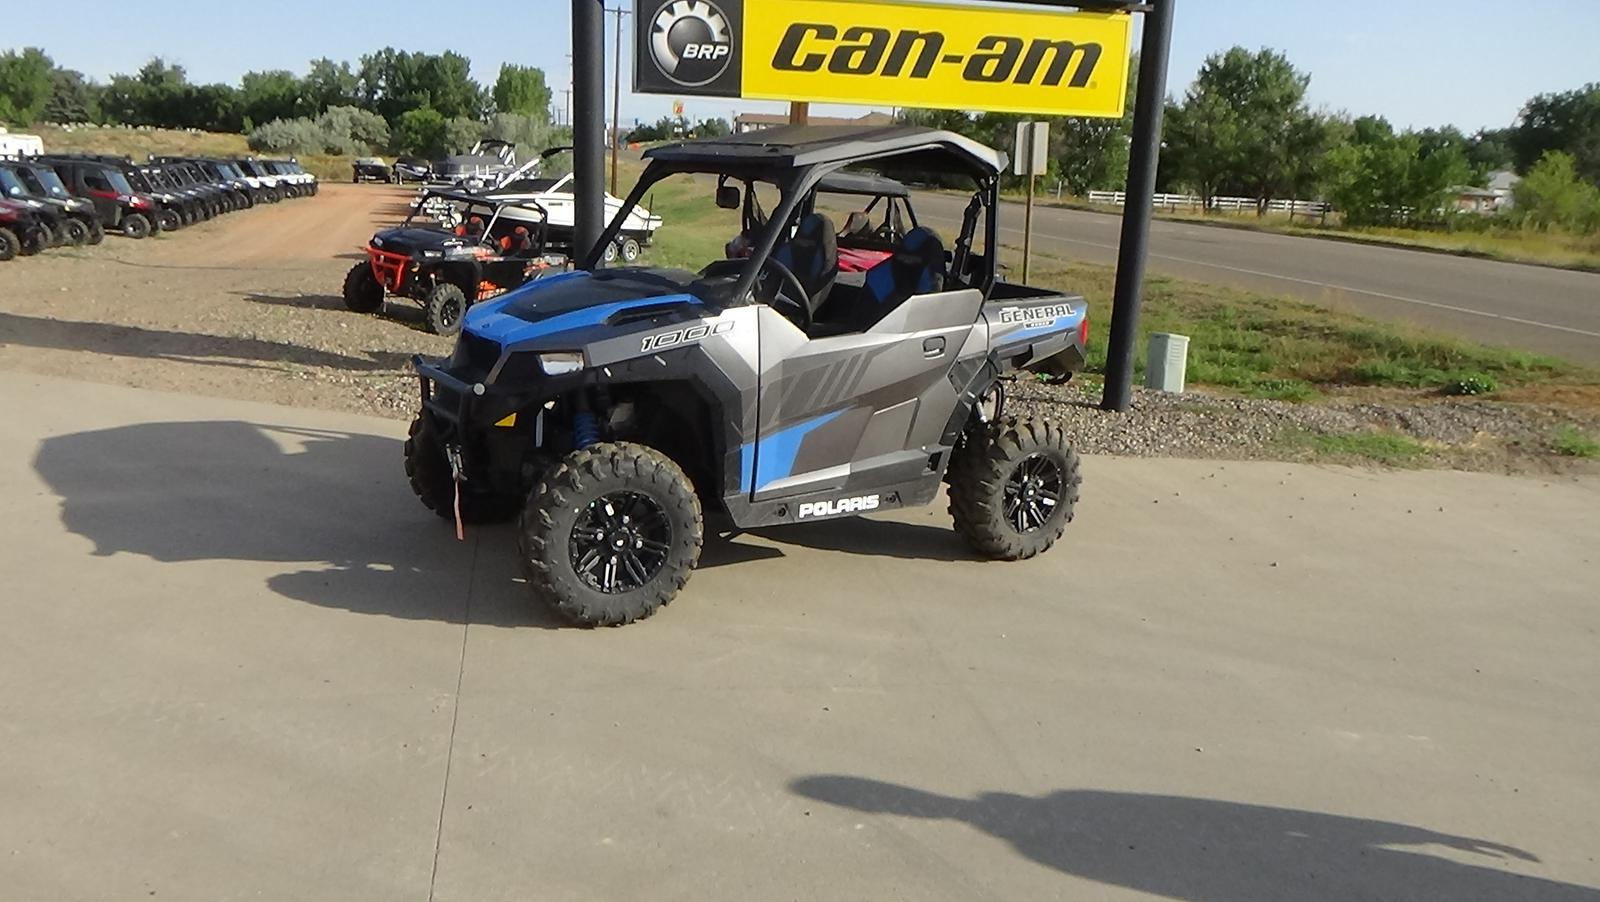 2019 polaris industries polaris general 1000 eps deluxe -titanium metallic